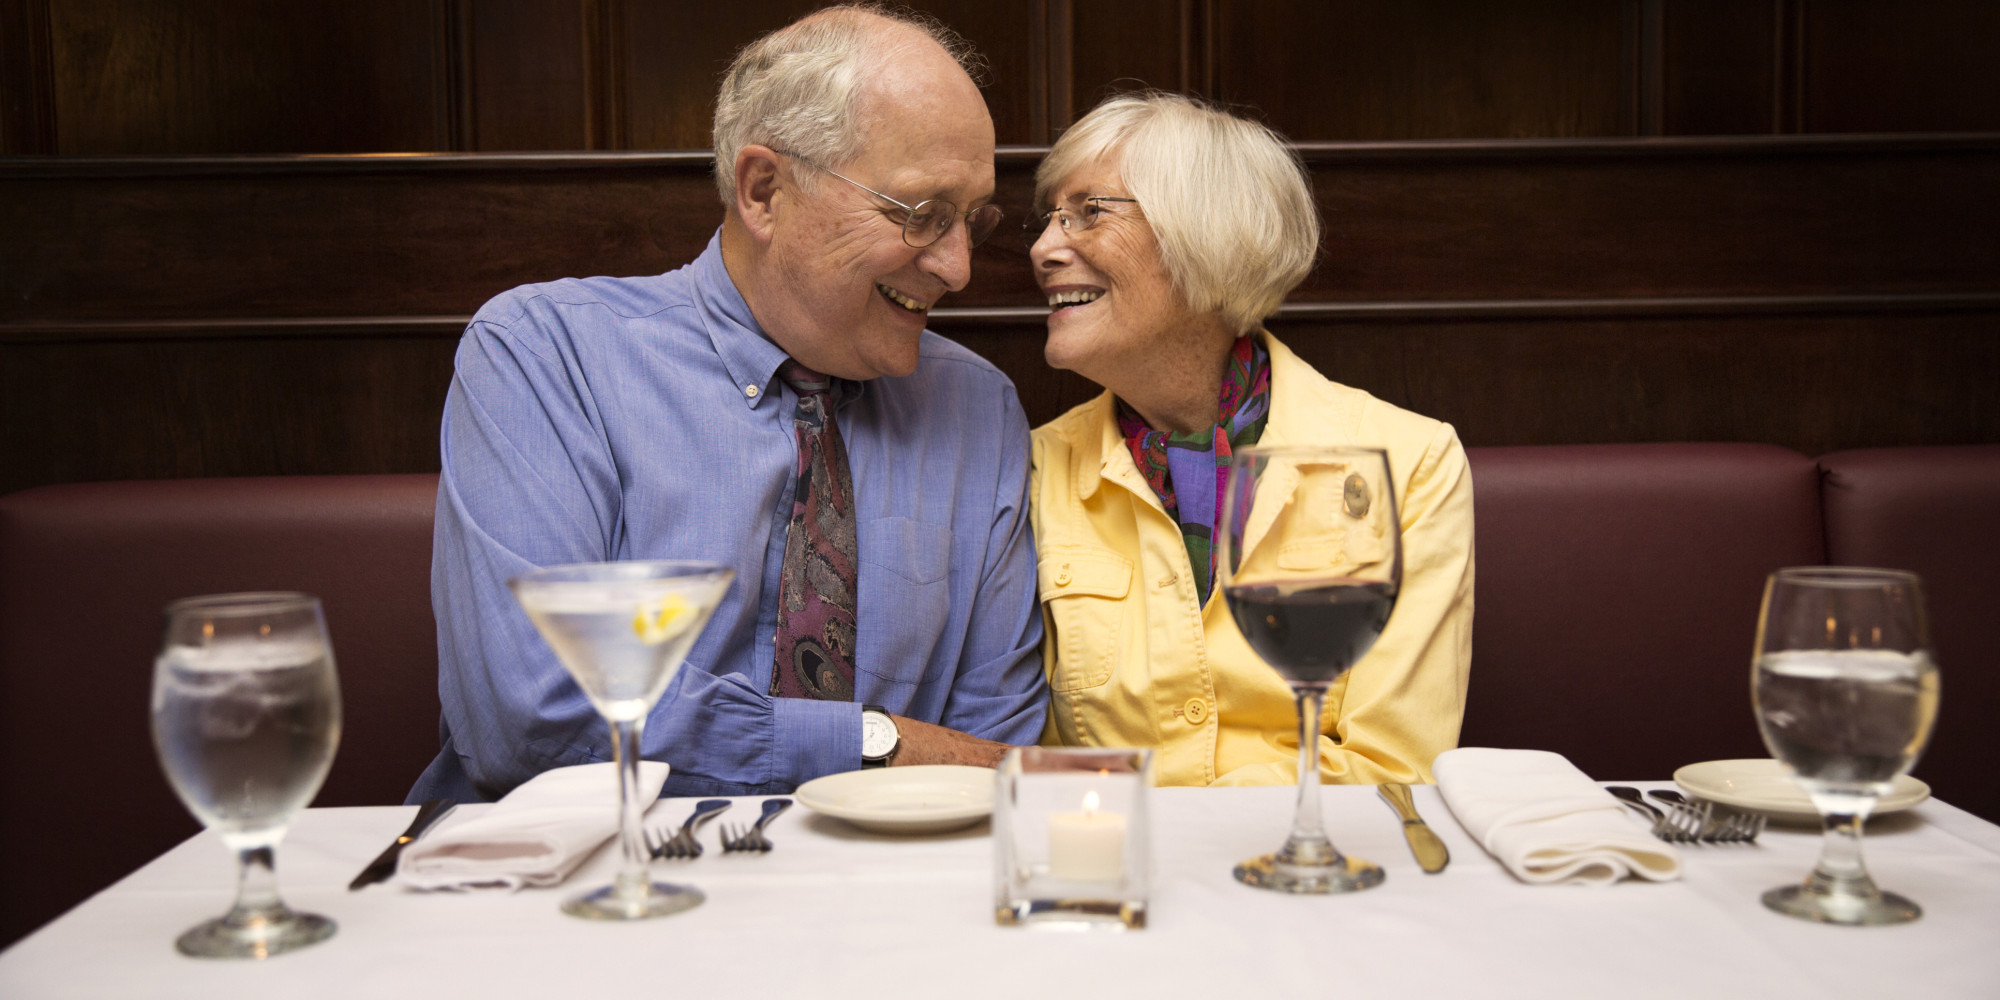 Old people dating